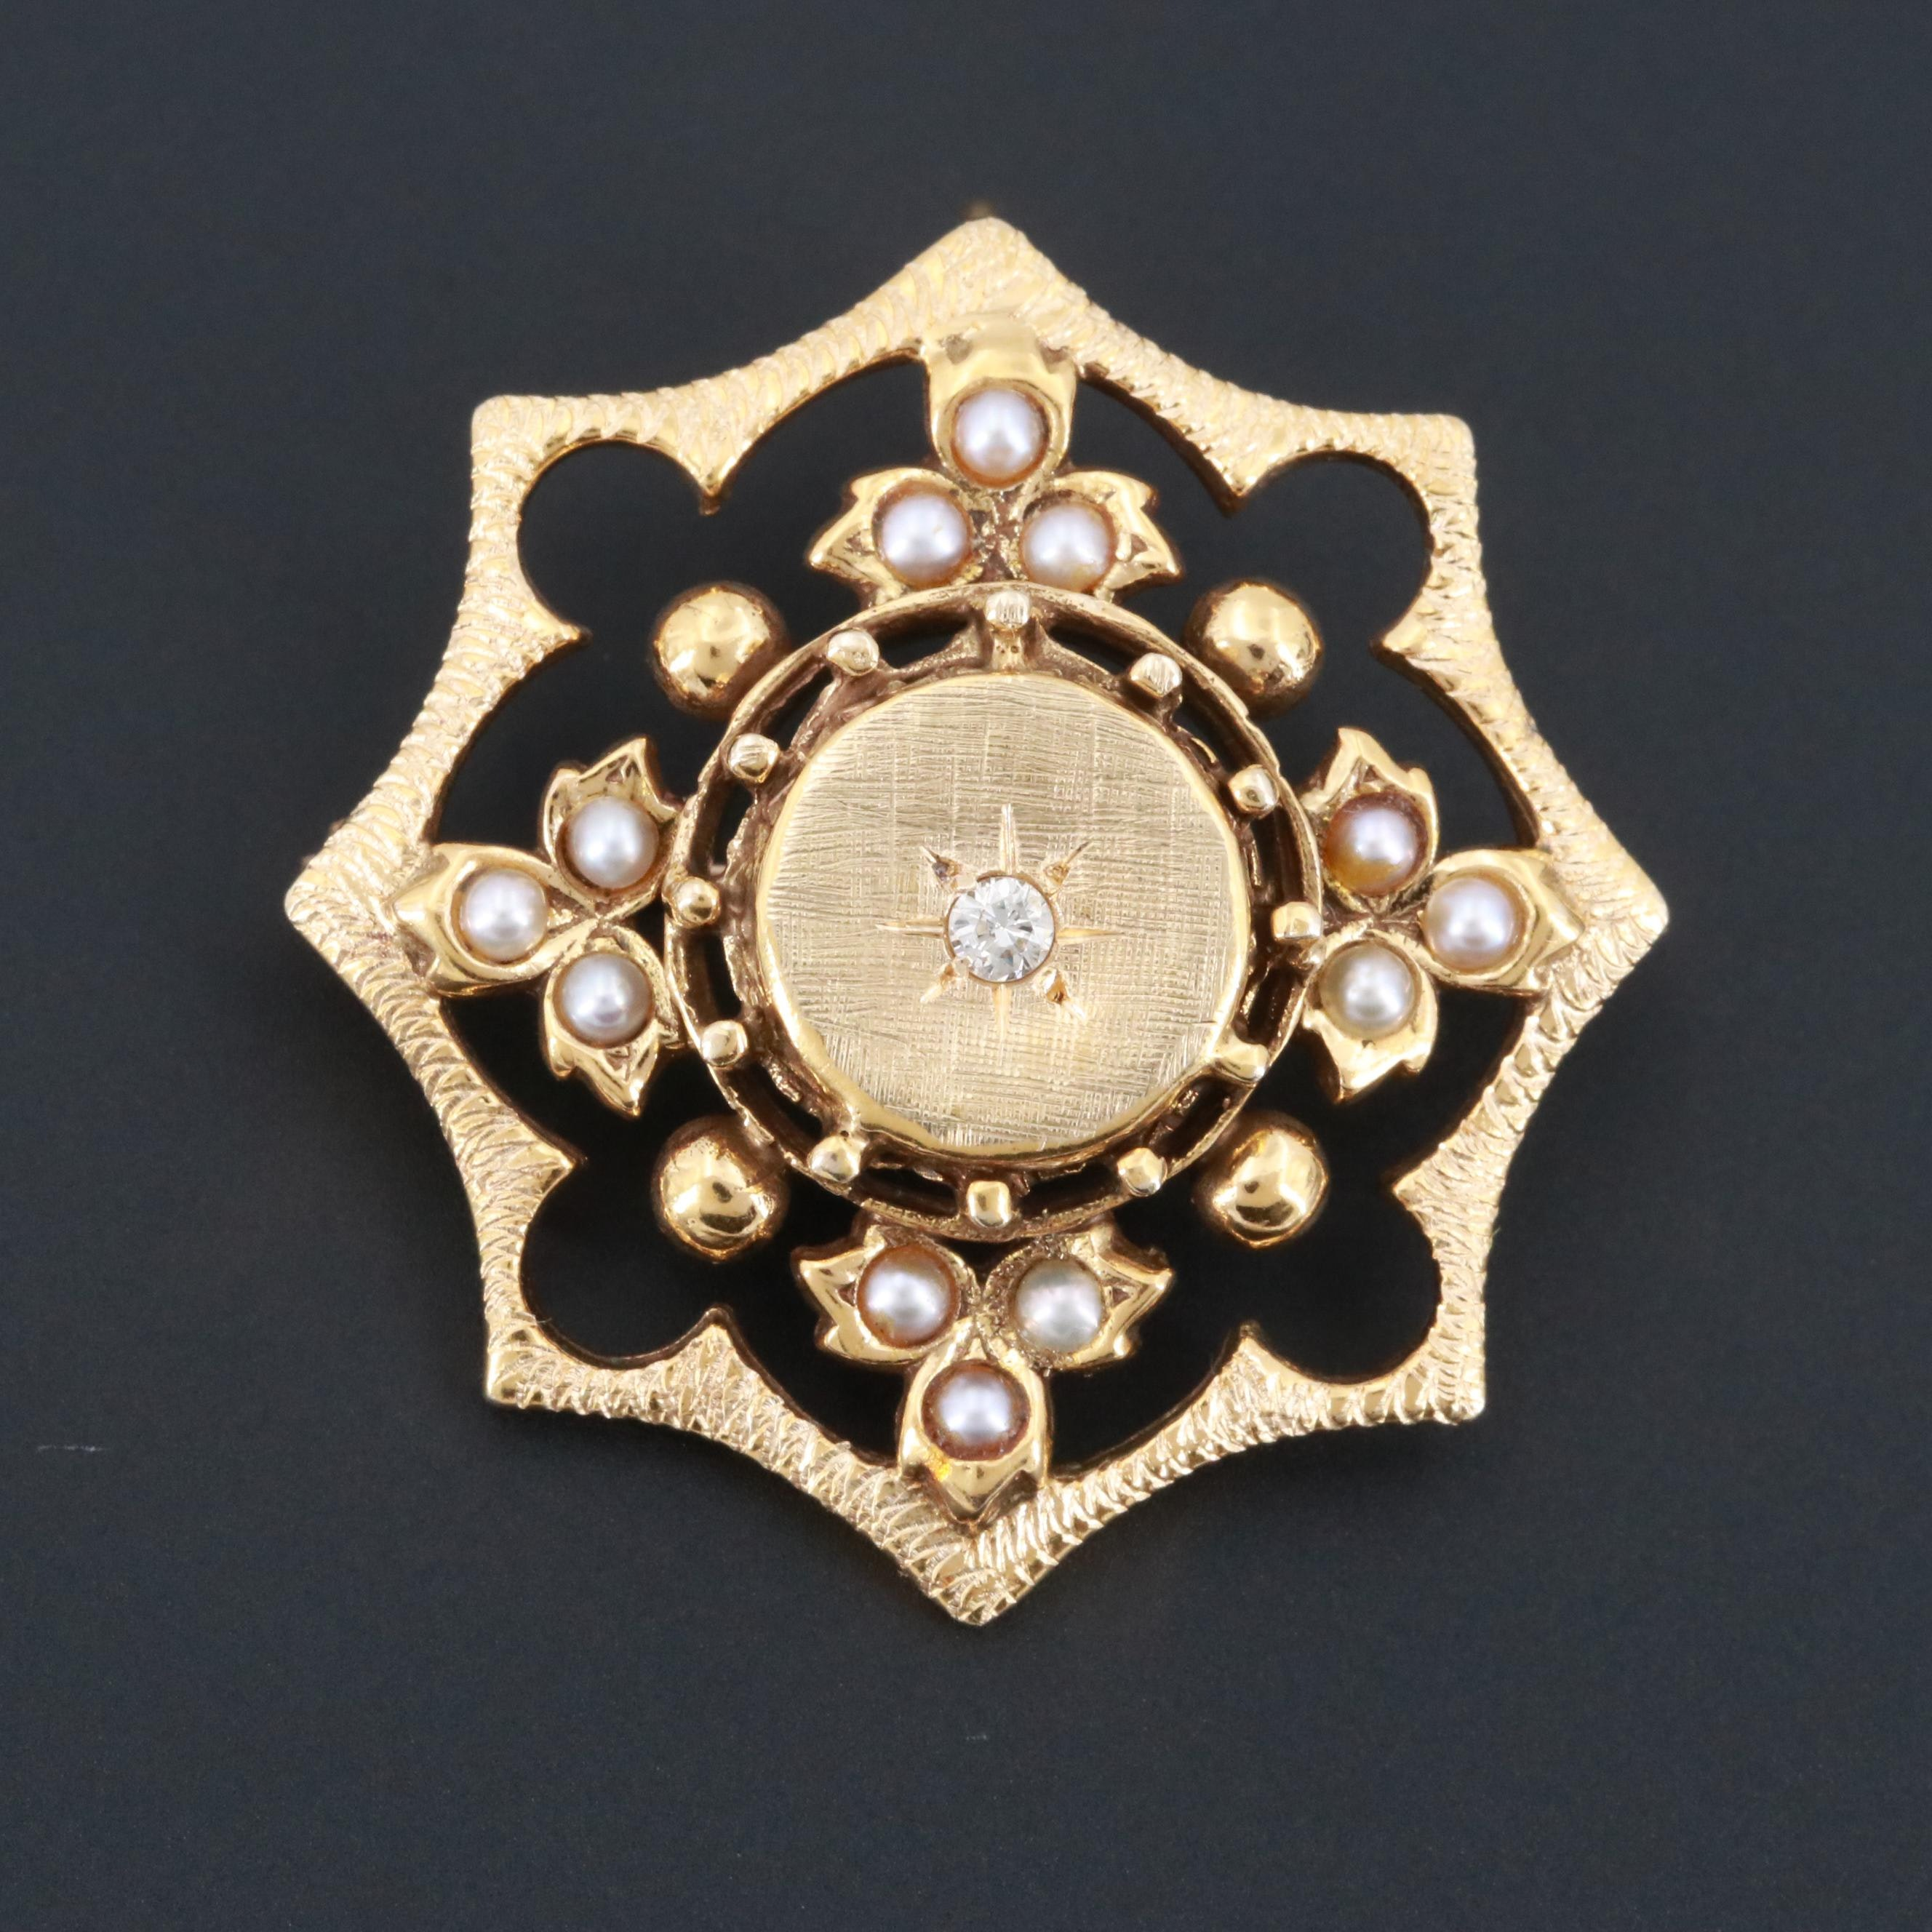 Victorian Revival 14K Yellow Gold Seed Pearl and Diamond Converter Brooch